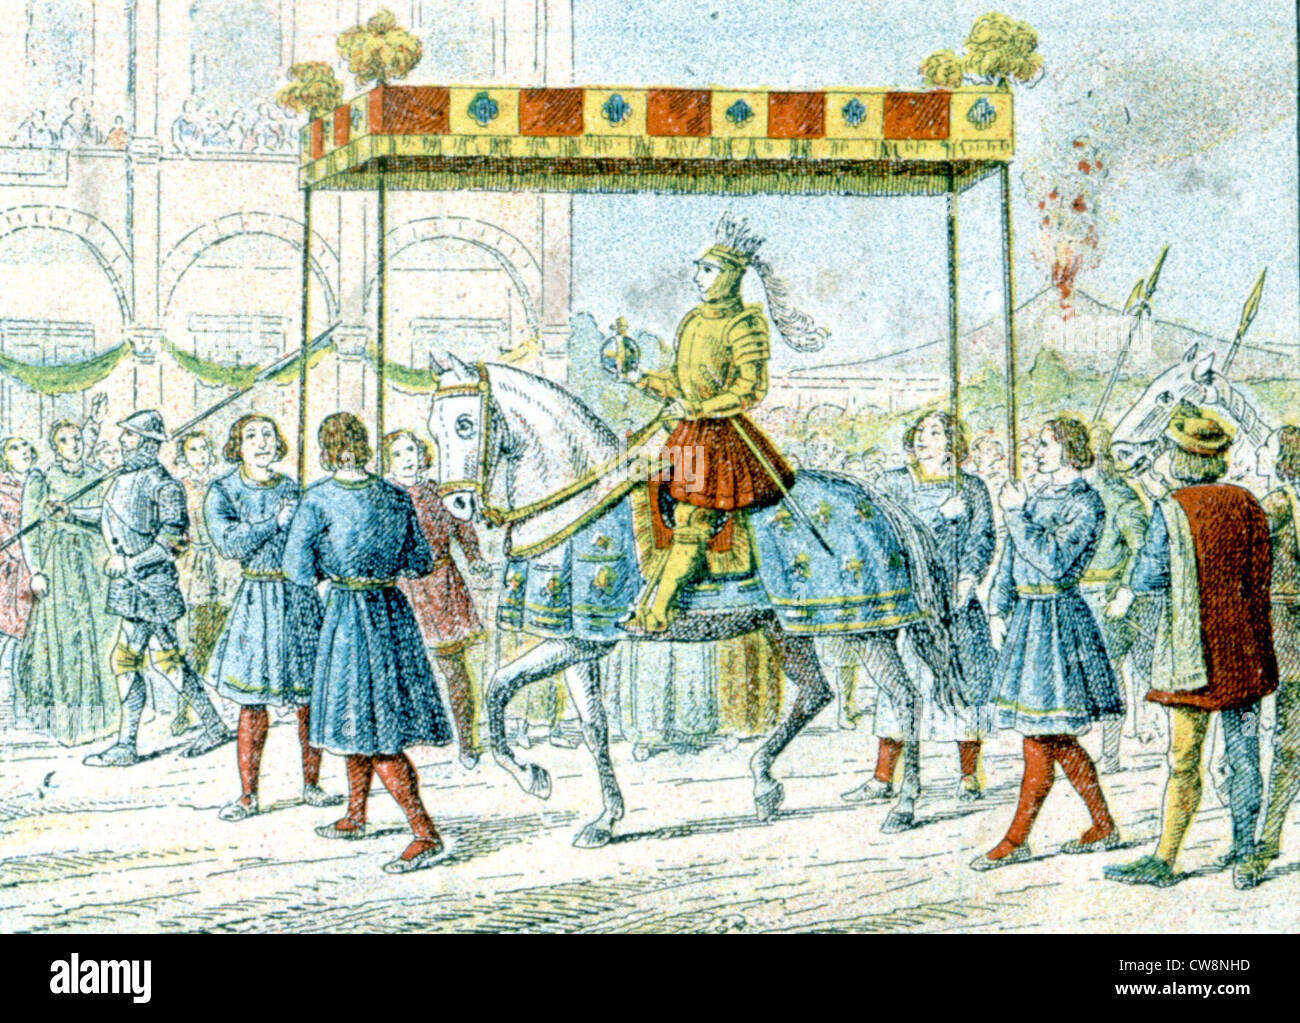 Charles VIII, King of France, illustrations Stock Photo